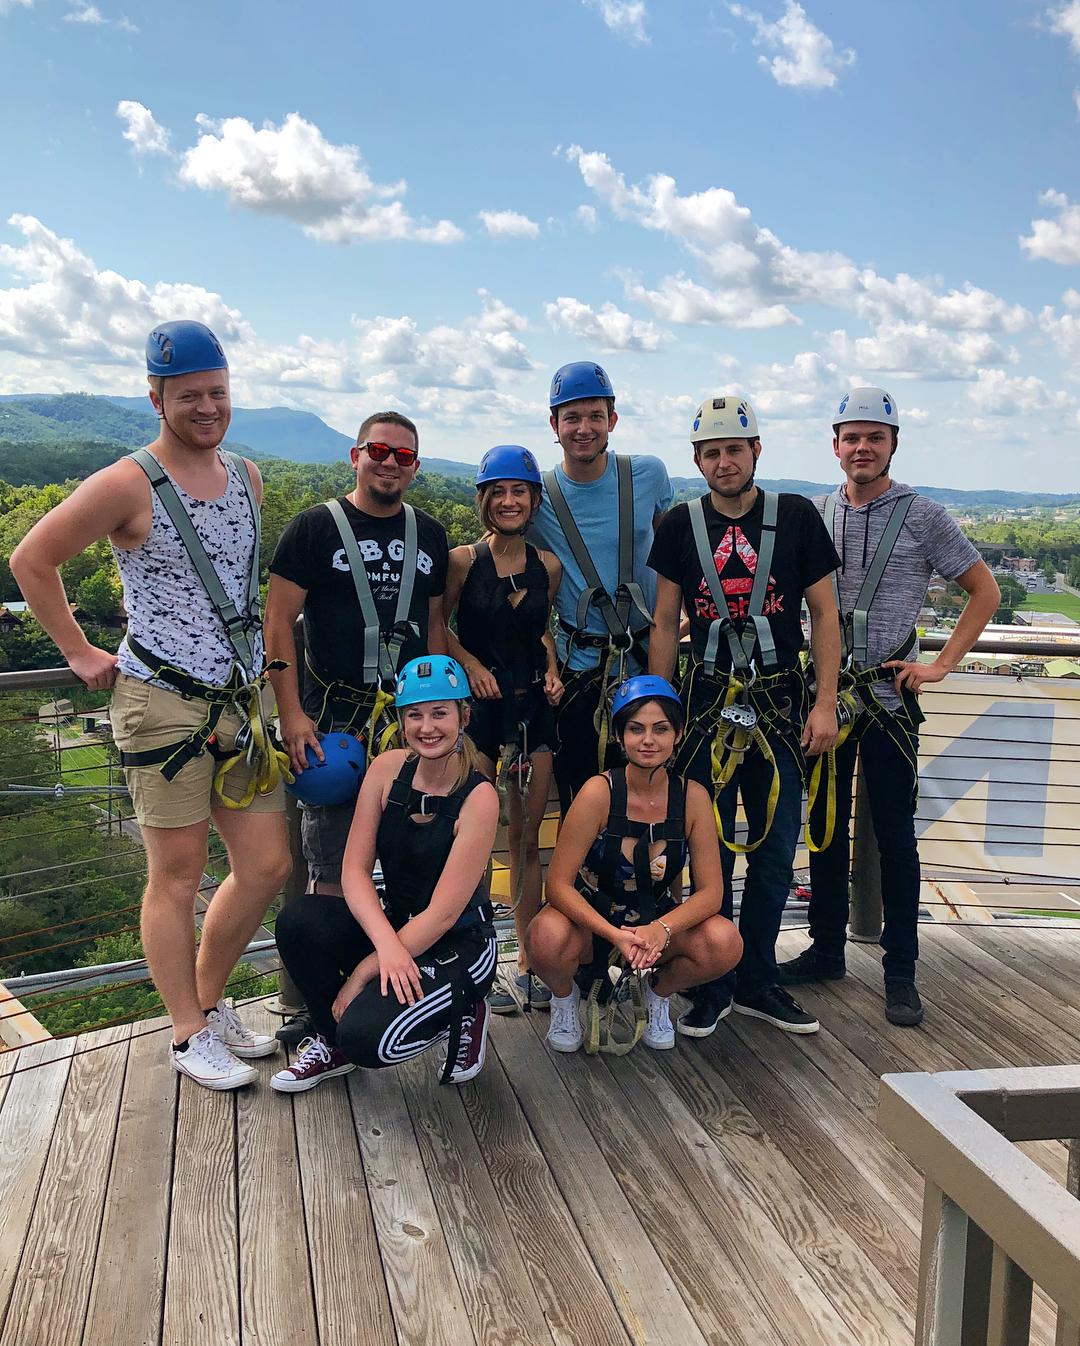 Pigeon Forge Things To Do - The Dome Ziplines - Original Photo